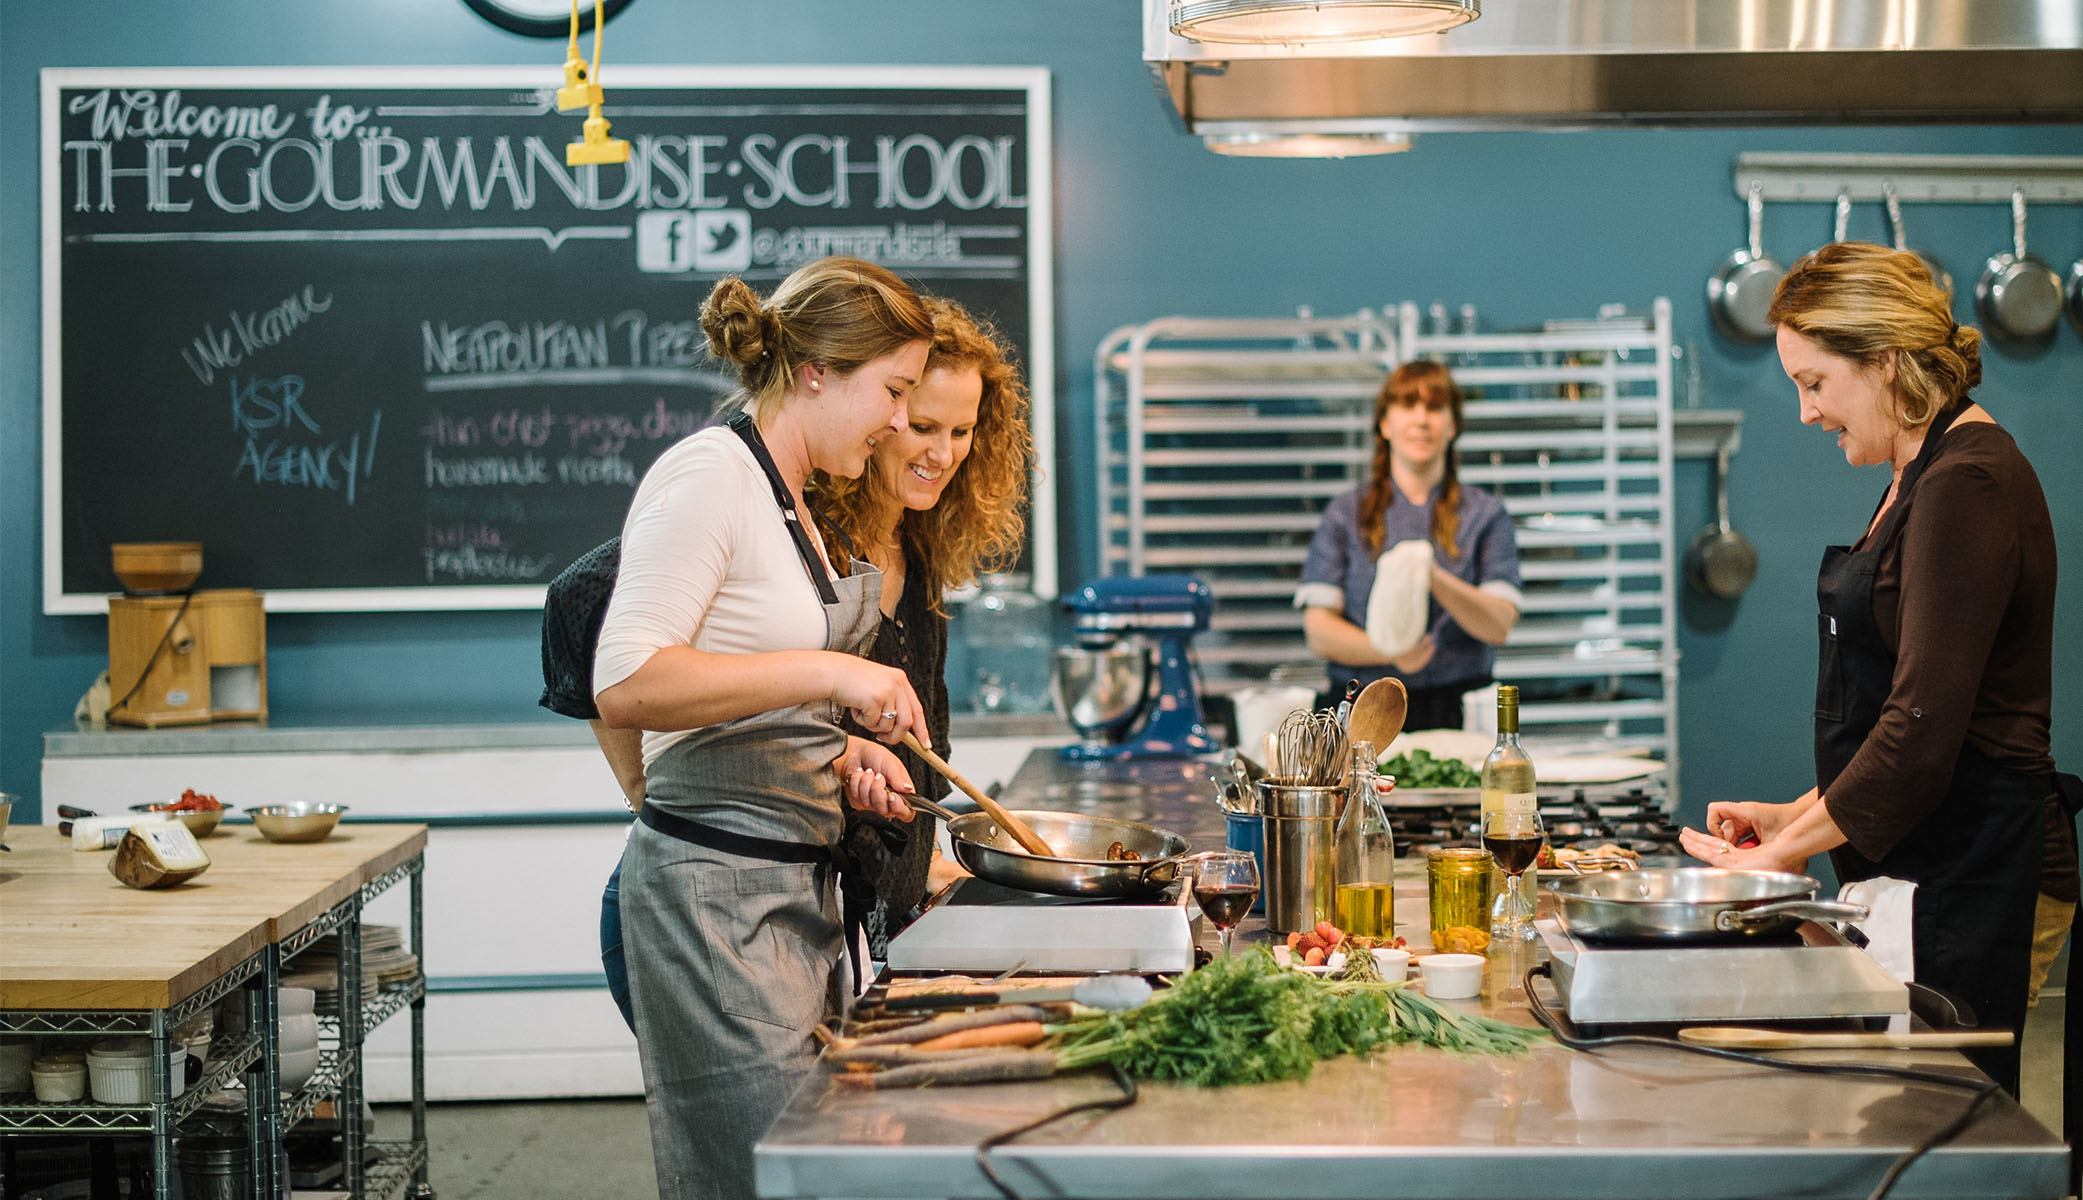 The Gourmandise School | Best Cooking Classes In Los Angeles